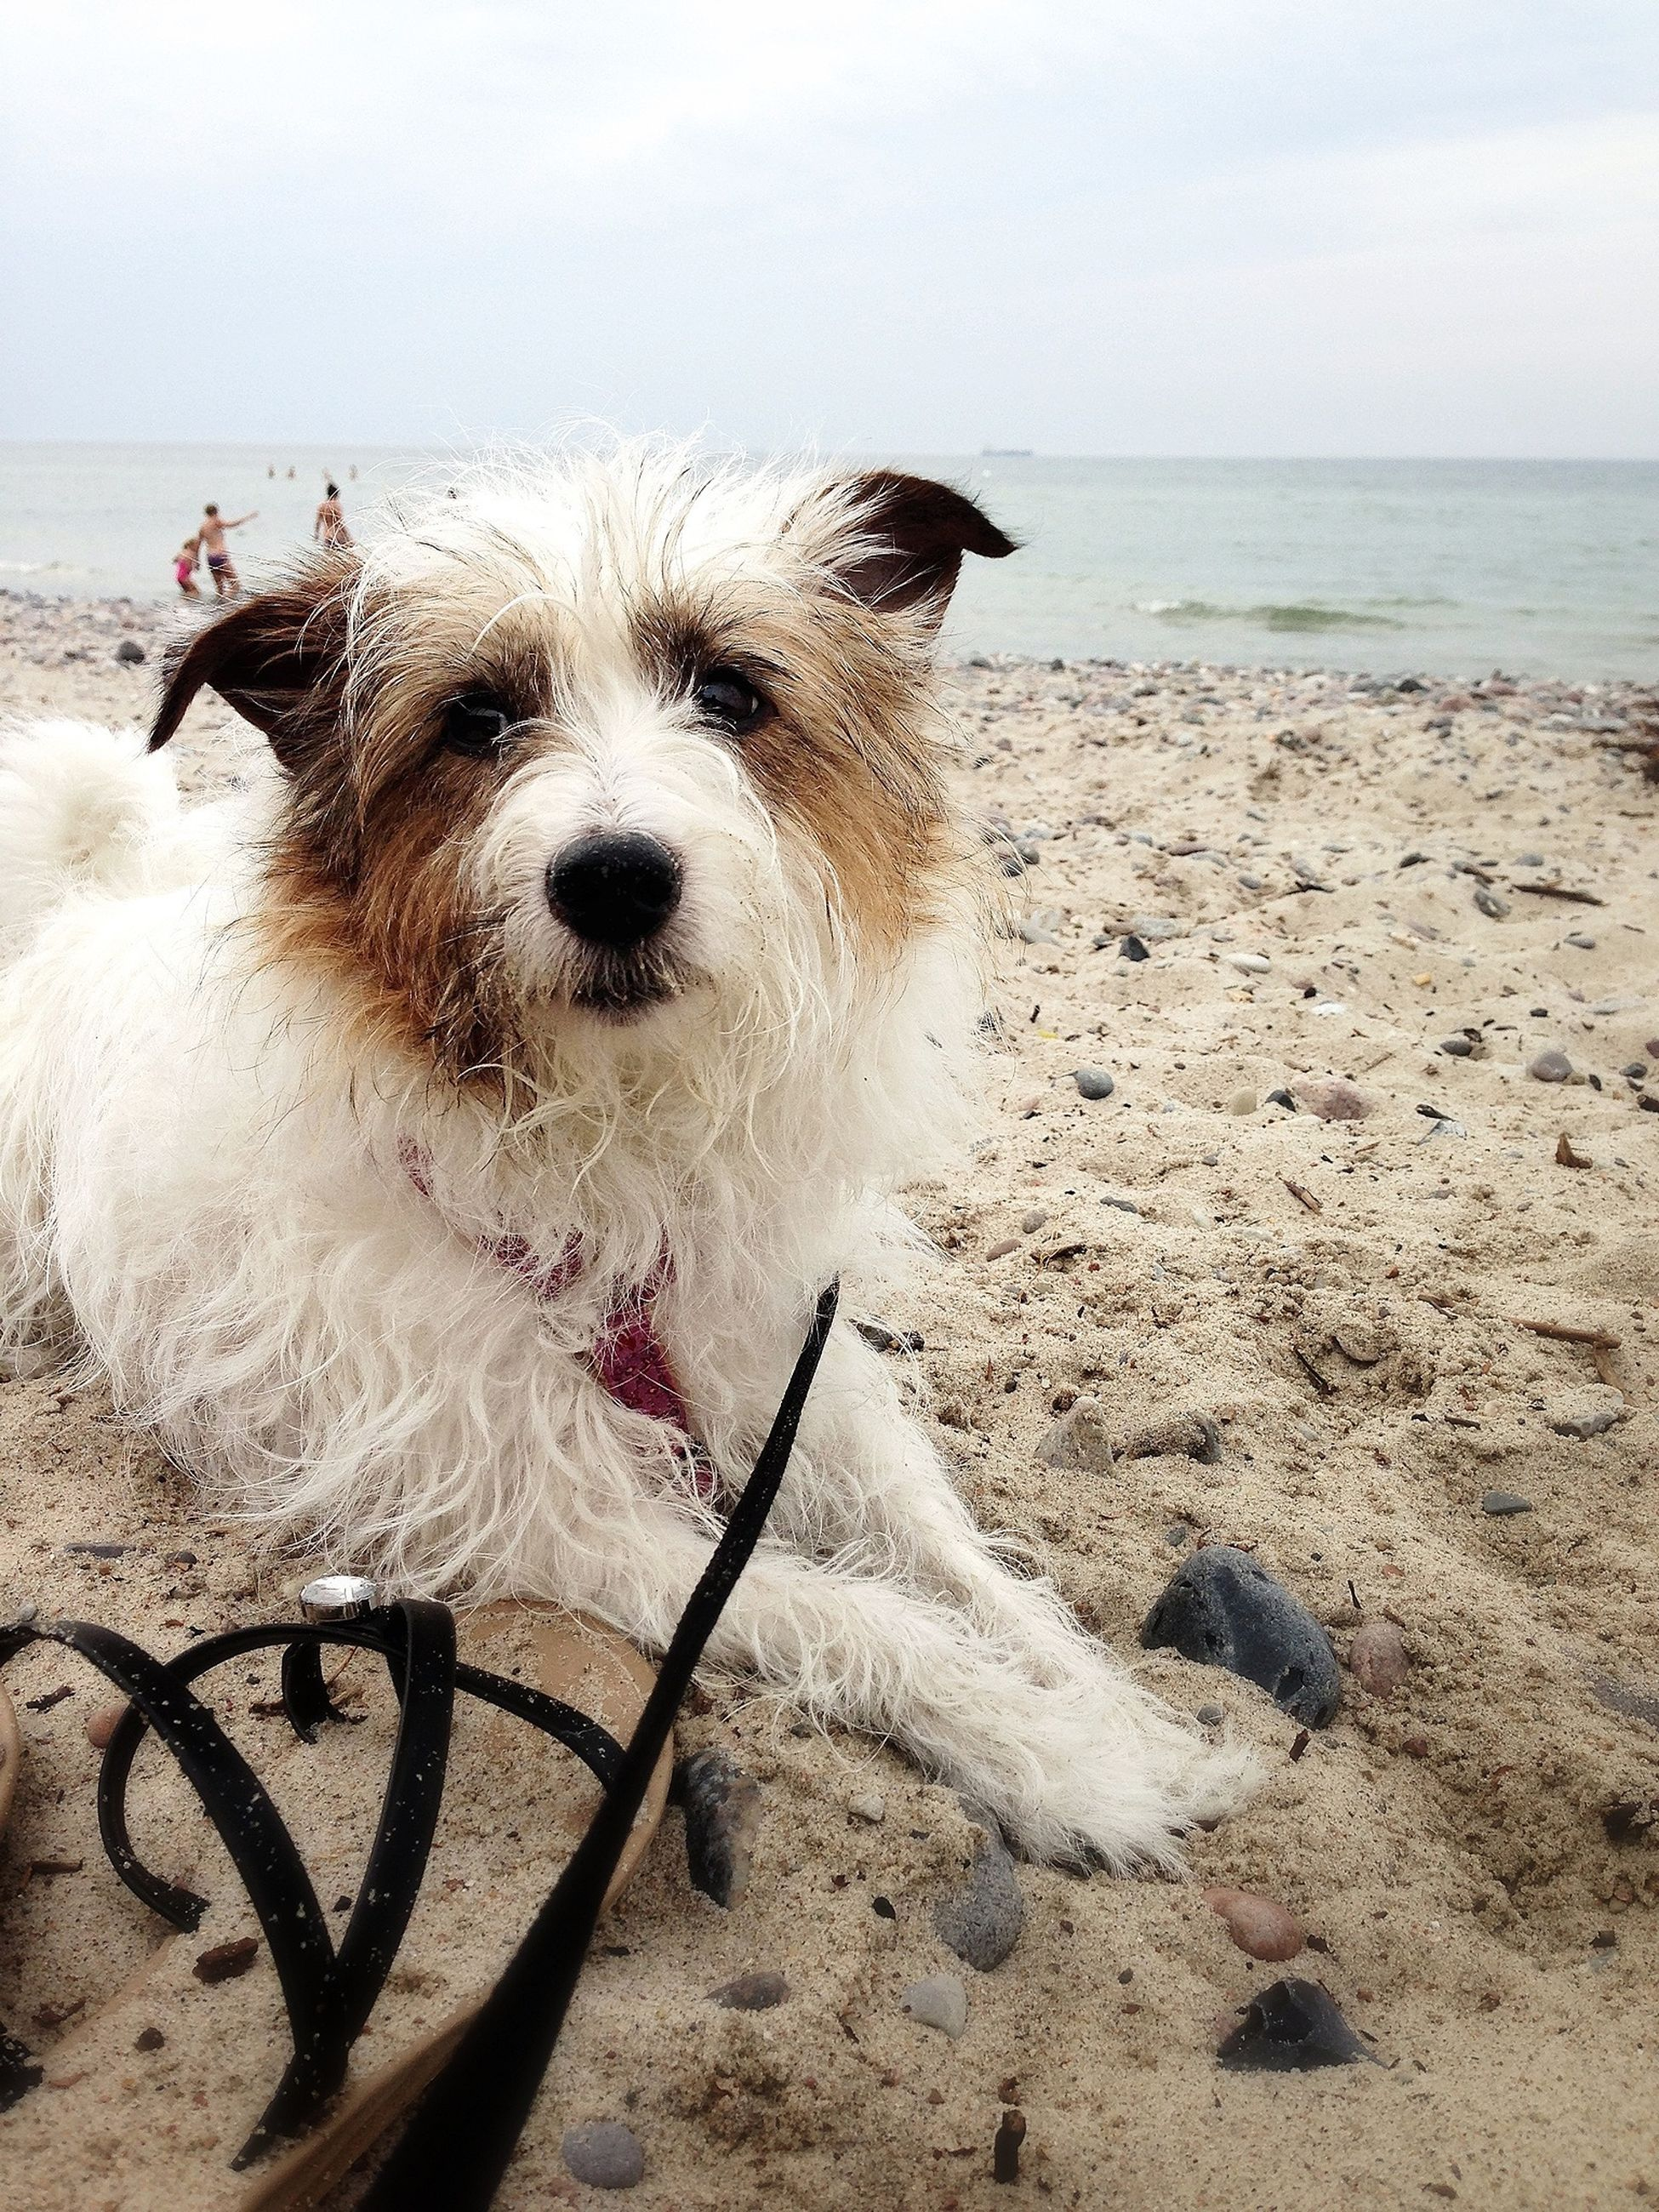 beach, sand, sea, one animal, animal themes, shore, horizon over water, domestic animals, mammal, dog, pets, sky, nature, water, day, outdoors, beauty in nature, full length, relaxation, tranquility